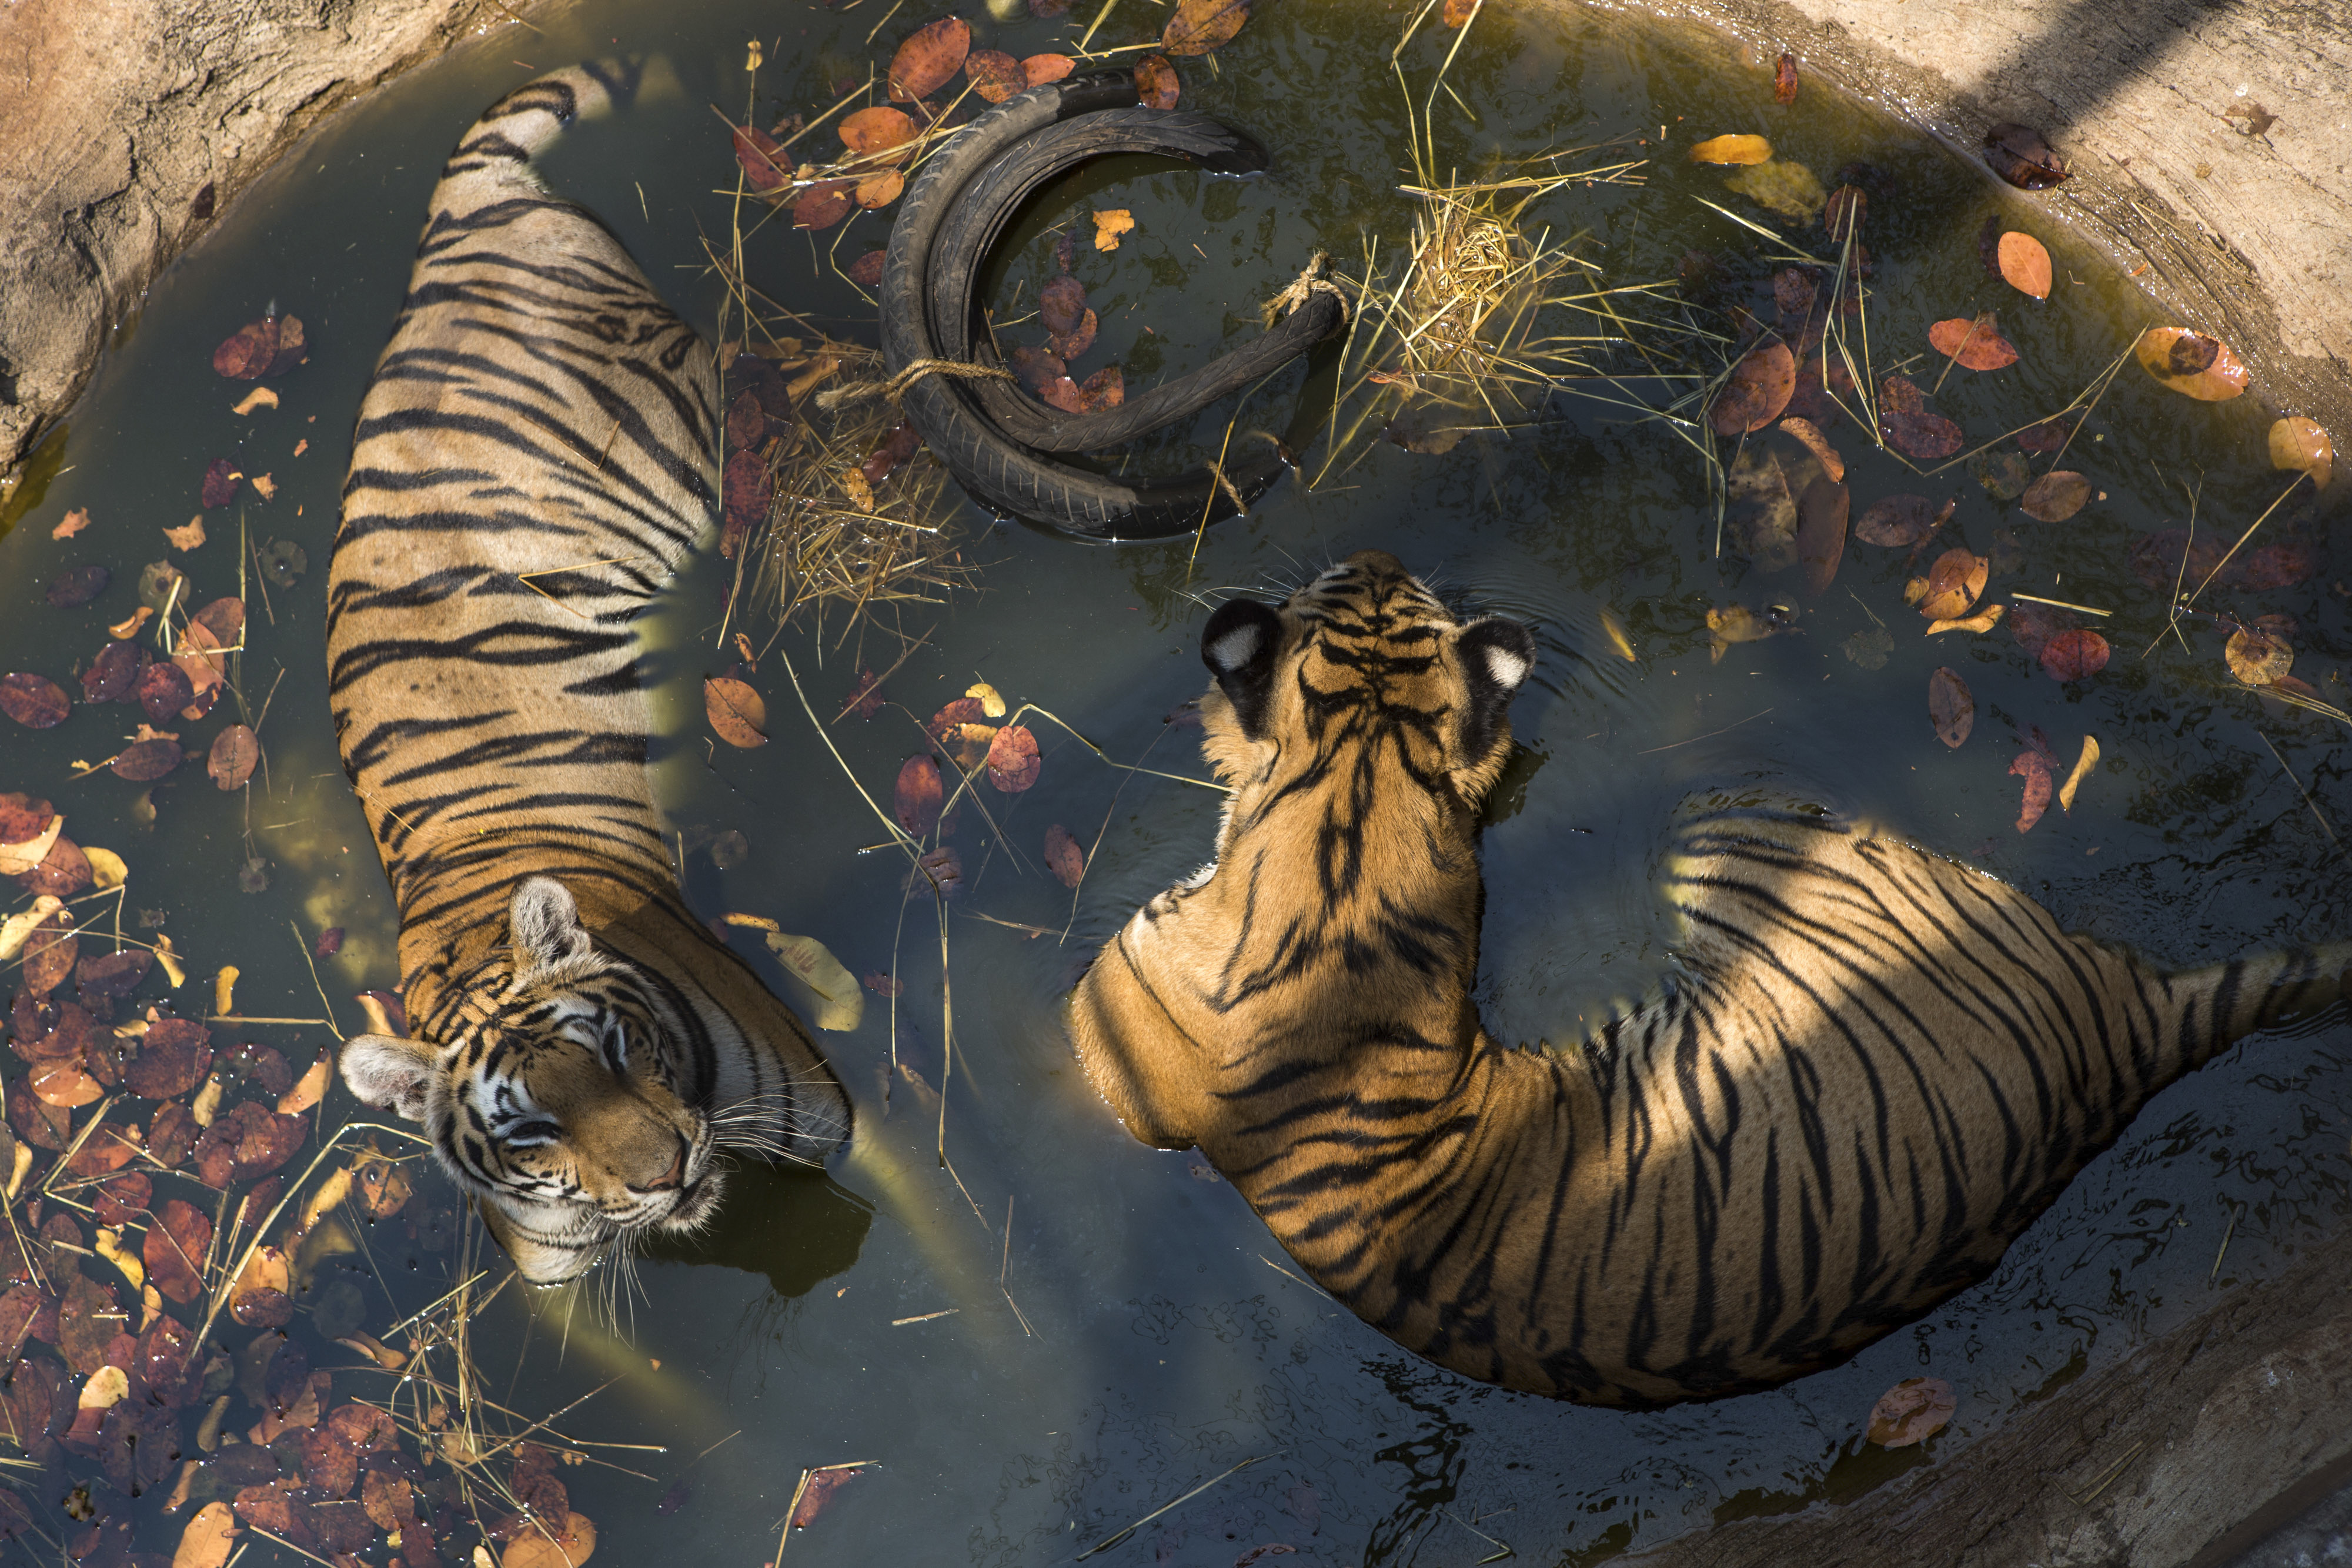 A pair of tigers soak in a shallow pool at the Tiger Temple, a controversial Buddhist monastery where paying visitors can interact with young adult tigers, in Kanchanaburi, Thailand, on March 16, 2016.